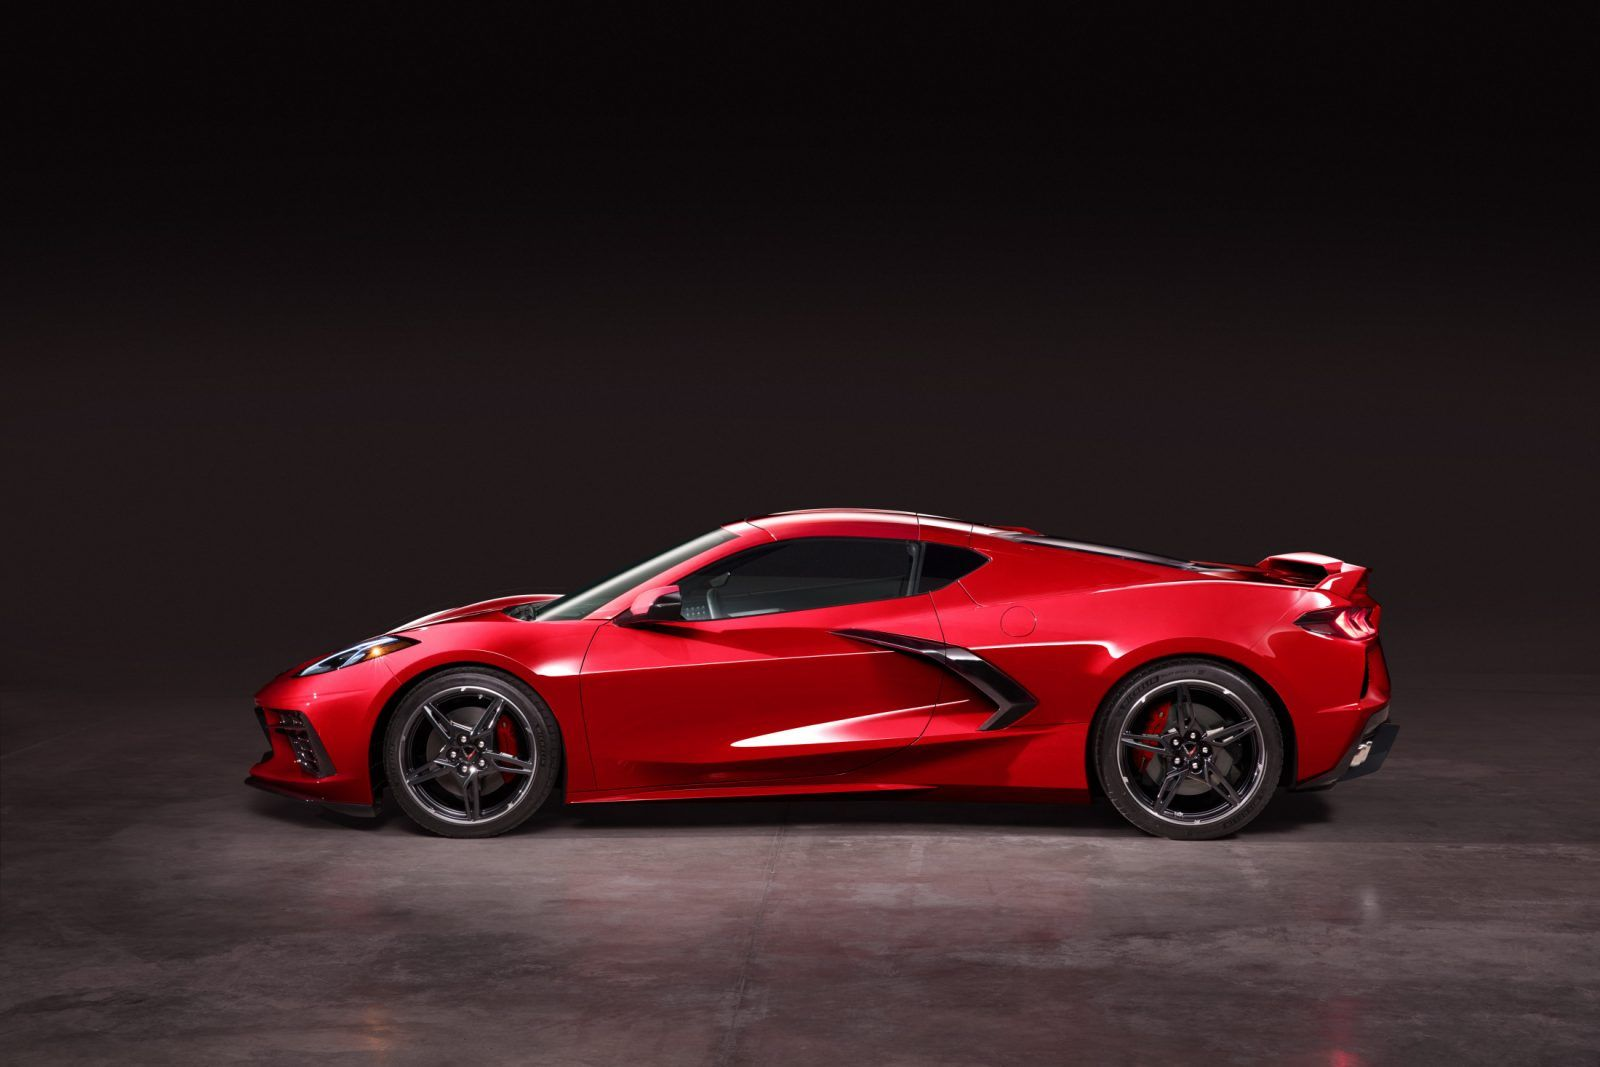 Zora S Dream Fulfilled Chevrolet Unveils 2020 C8 Corvette Stingray Mid Engine Power And Technology Revamp Iconic Nameplate For New Generation Of Sports Car Bu Chevrolet Corvette Stingray Chevrolet Corvette Corvette Stingray